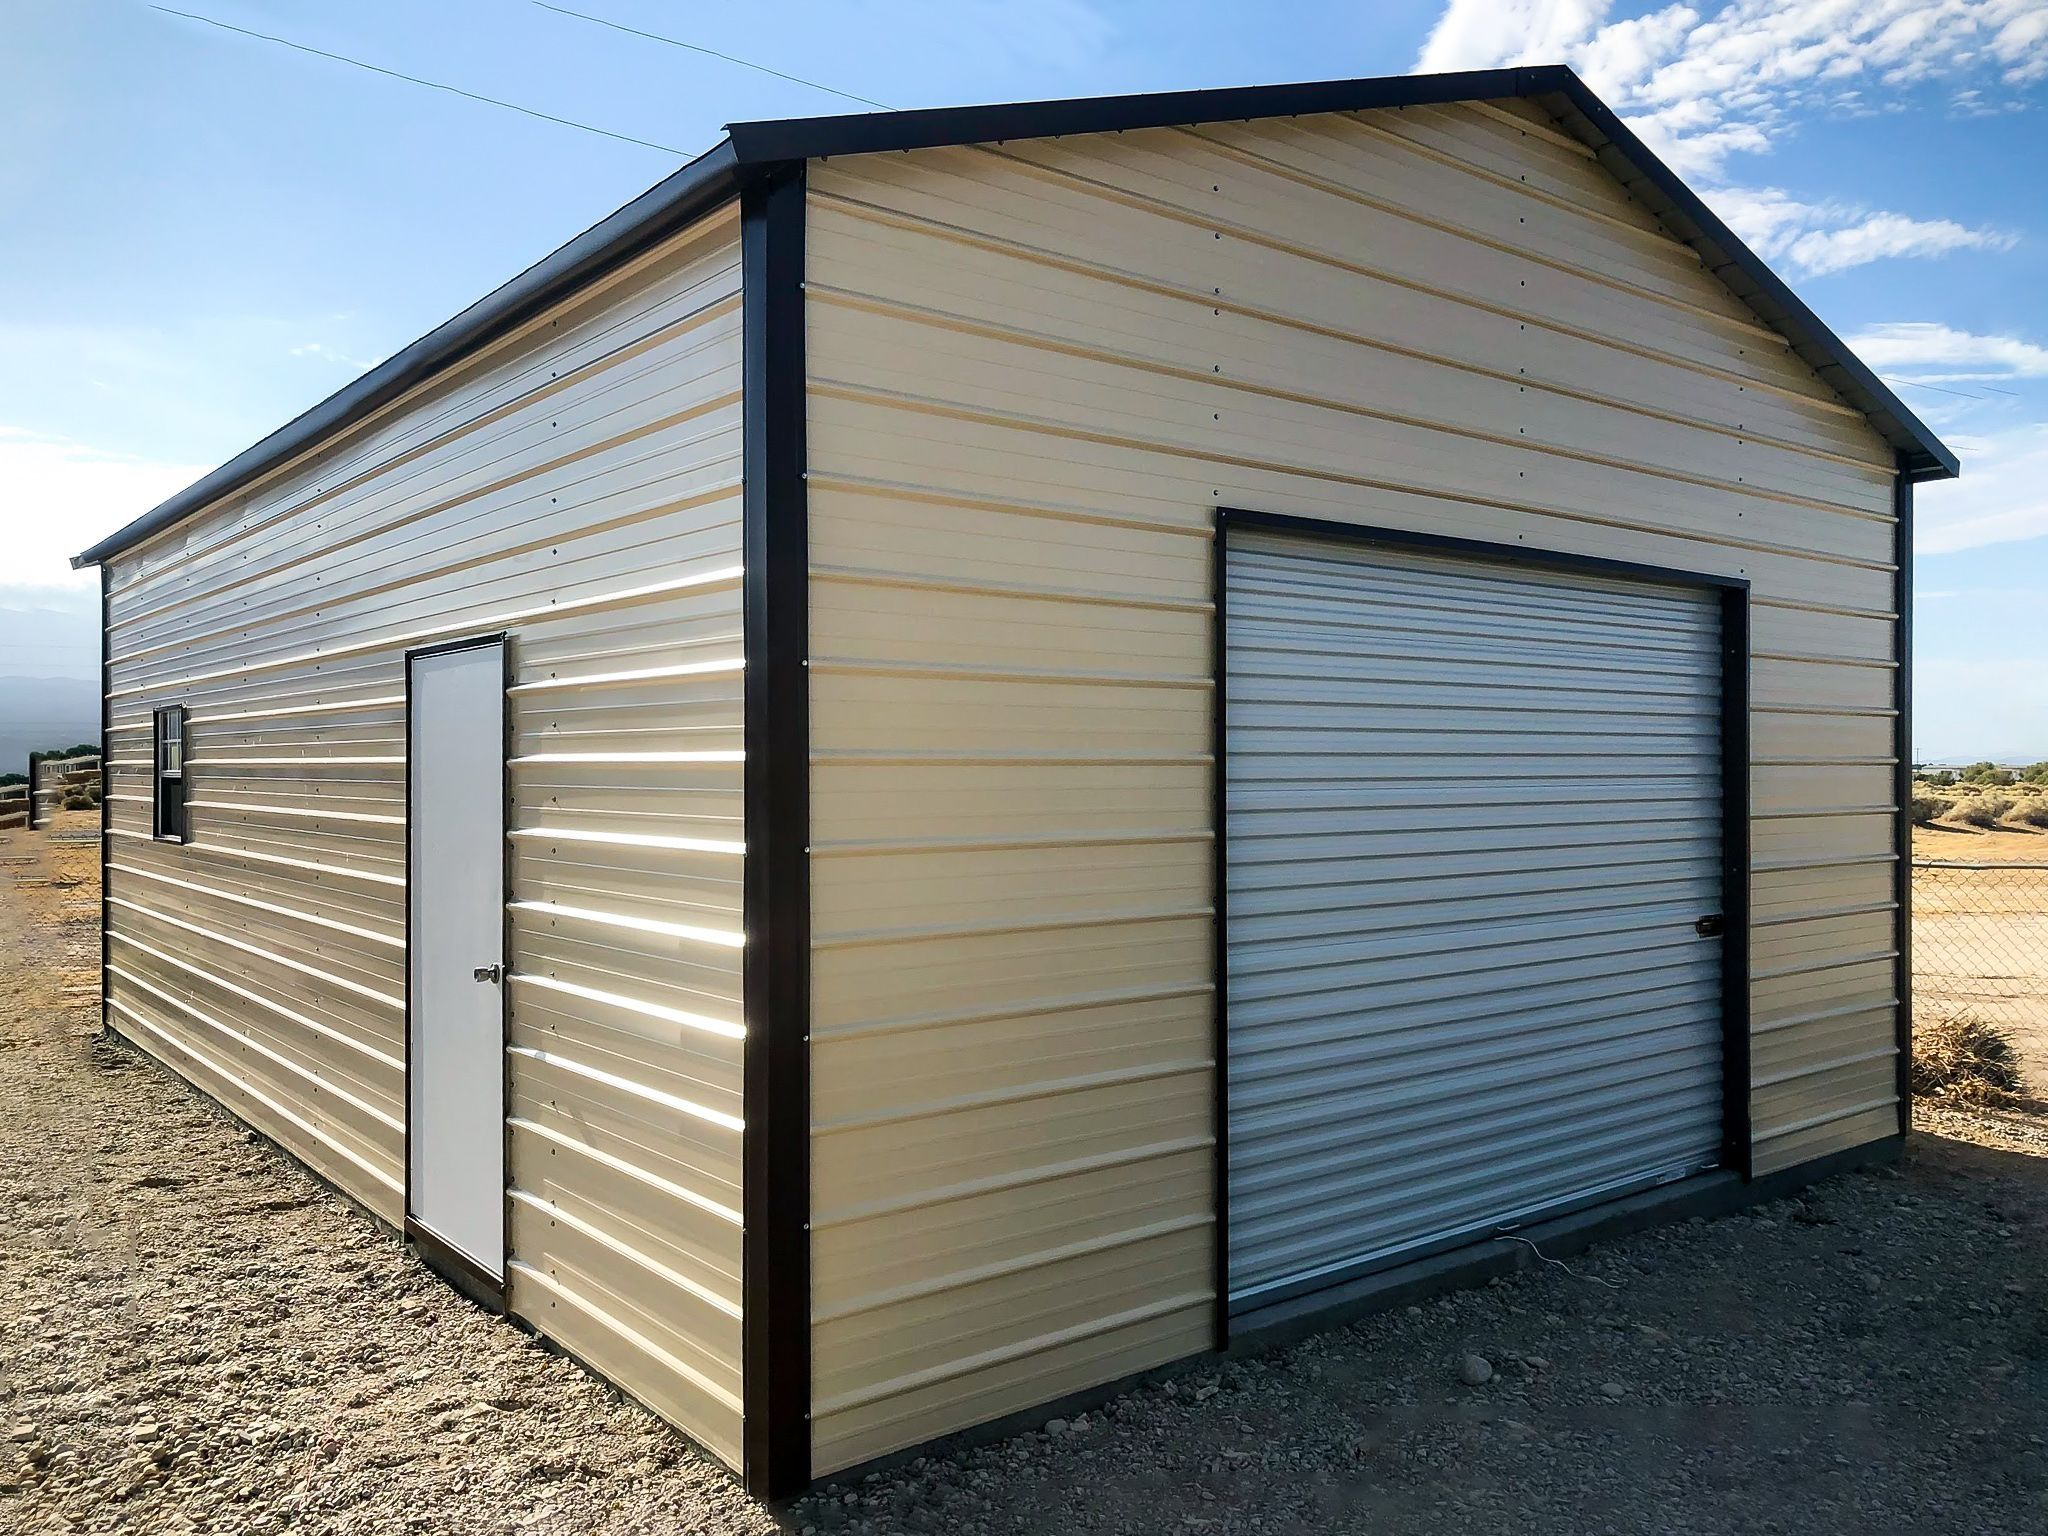 Cheap Carports Carport Garage Portable Carport Diy Carport Palram Carport Wood Carport House Carport Cheap Car With Images Carport Prices Diy Carport Steel Carports